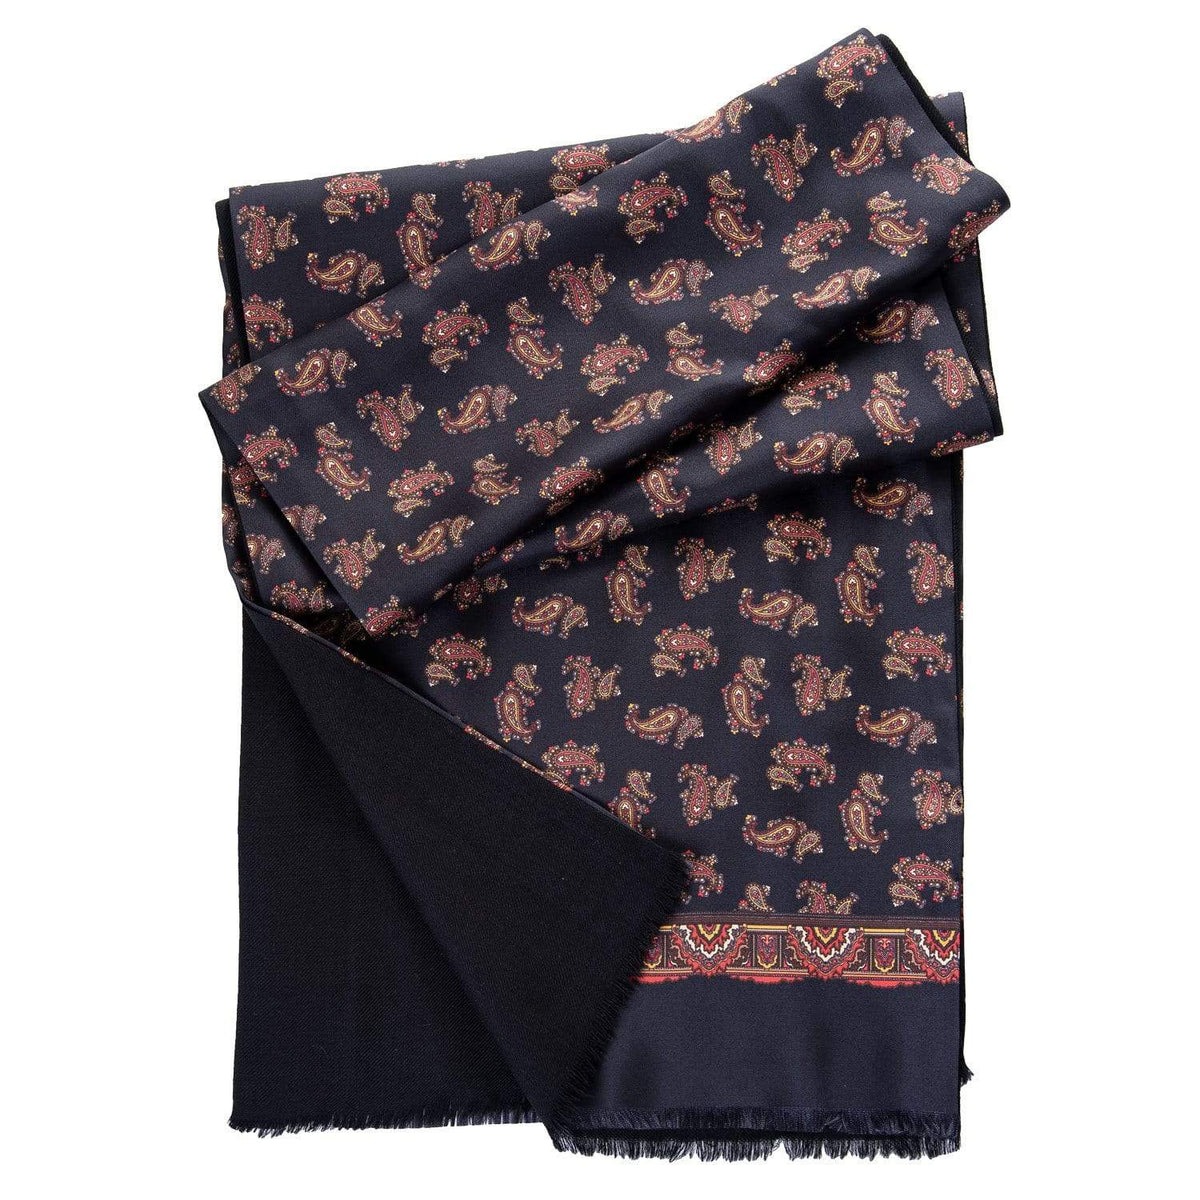 Luxury Italian silk double silk wool scarf